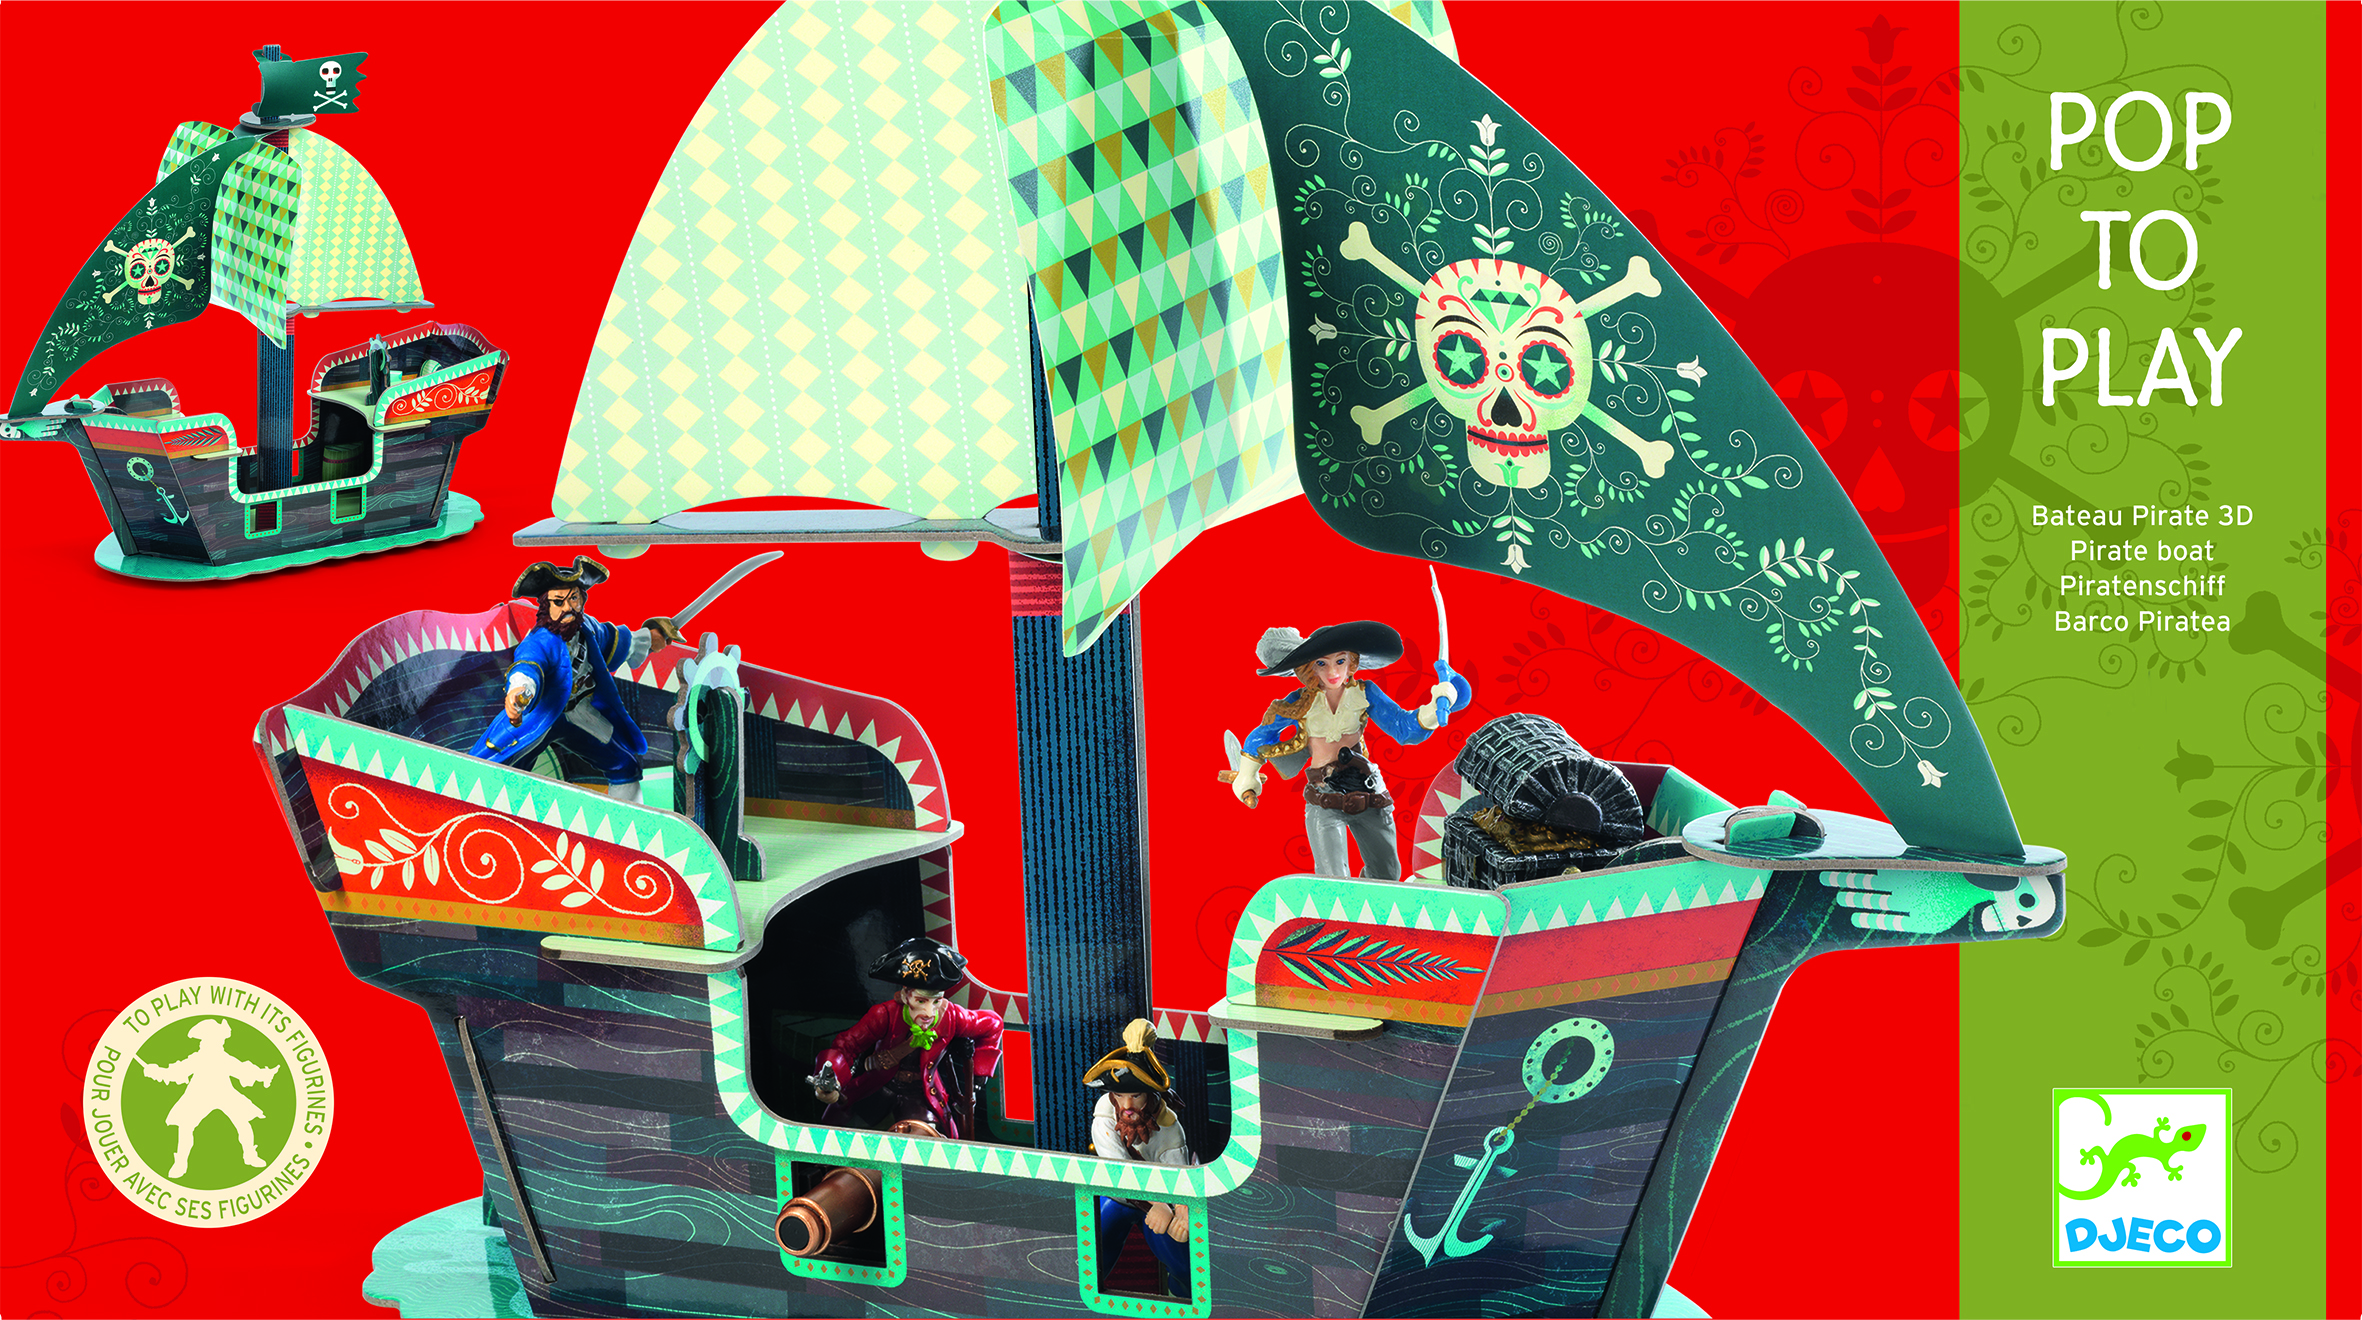 3D Pirate Boat from Djeco